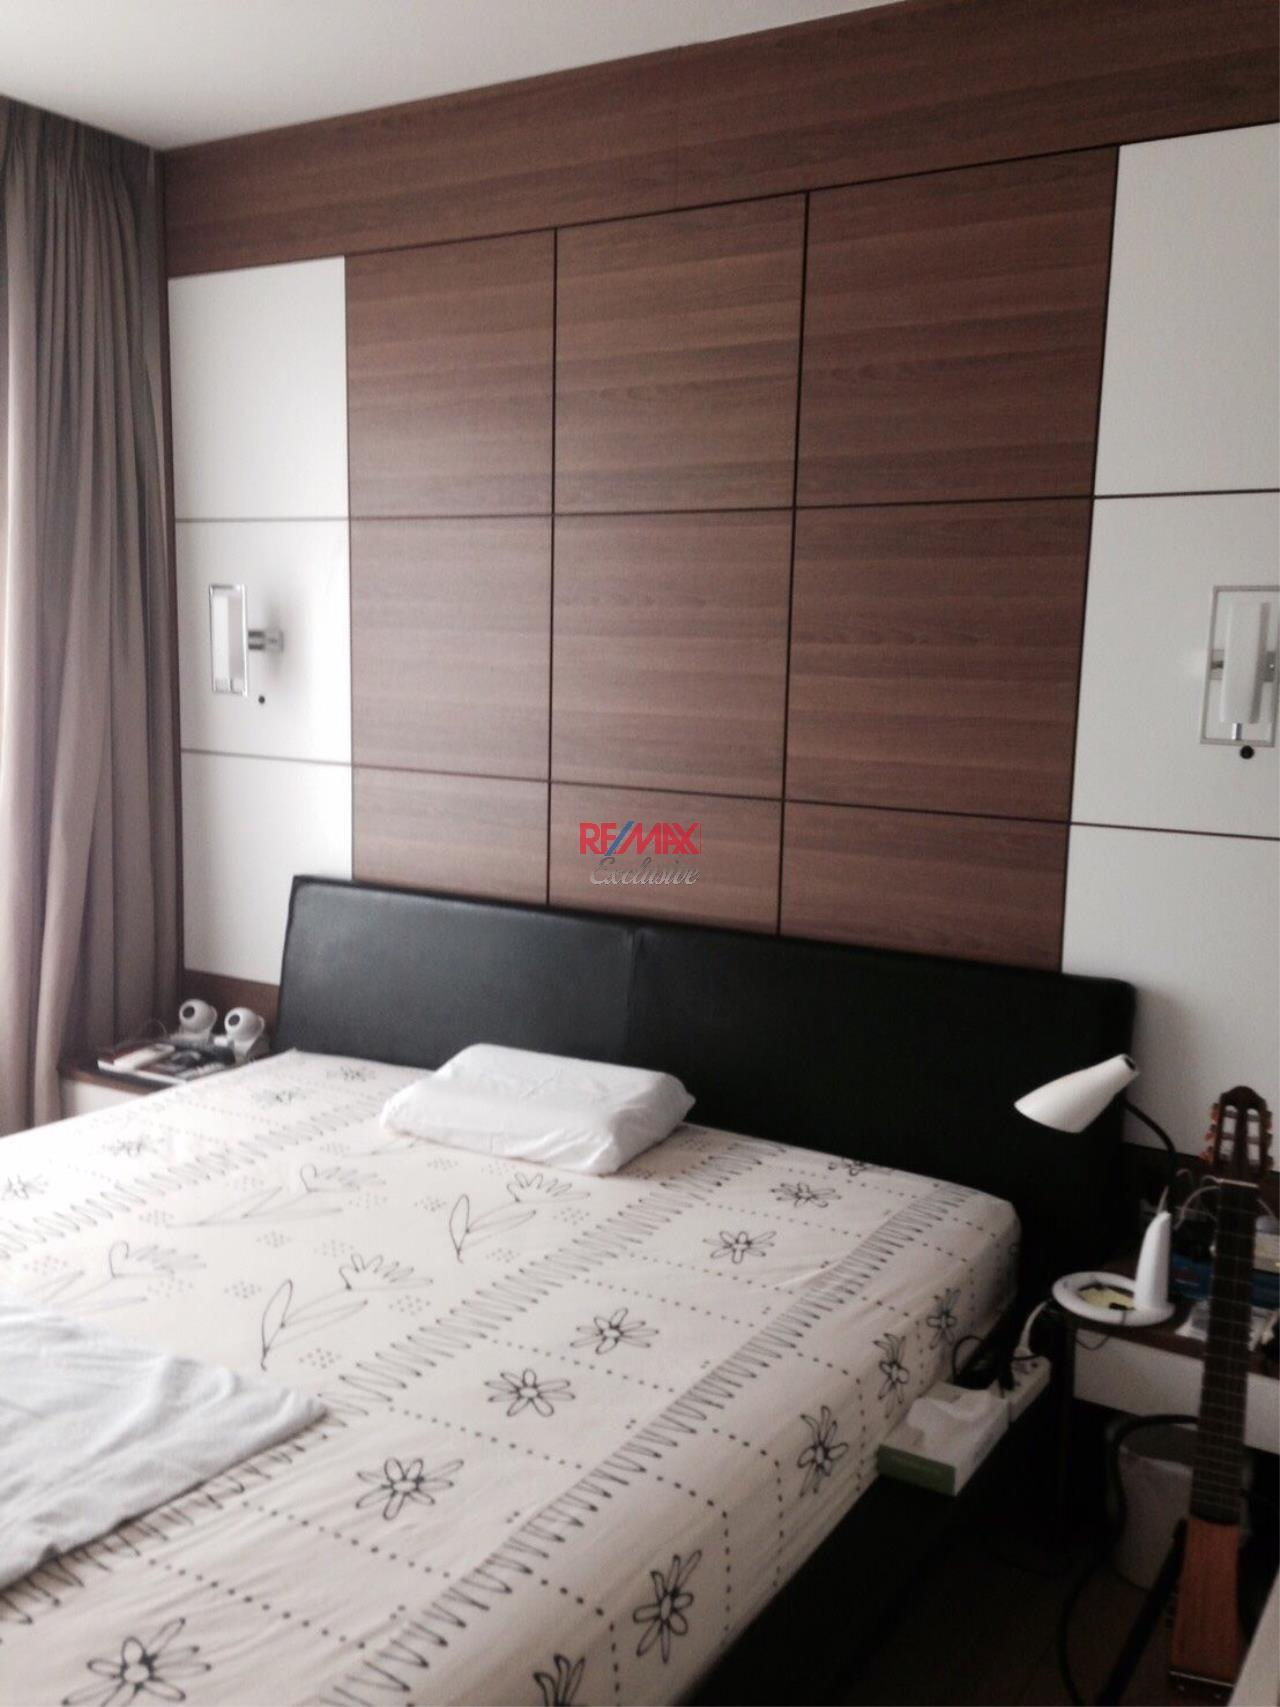 RE/MAX Exclusive Agency's Siri At Sukhumvit 2 Bedroom for rent 60,000 THB 5